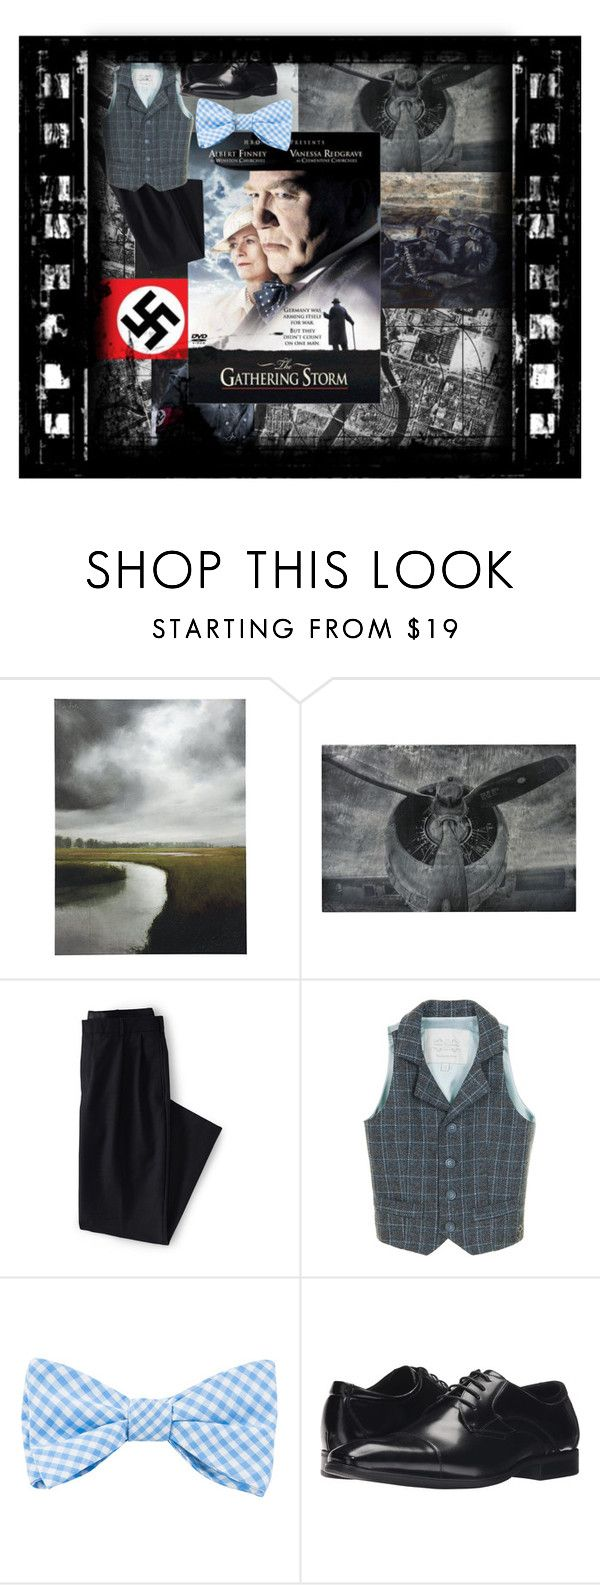 """""""The Gathering Storm"""" by elizabethshakespeare ❤ liked on Polyvore featuring Ballard Designs, Sterling, Lands' End, Little Wardrobe London, The Tie Bar and Stacy Adams"""